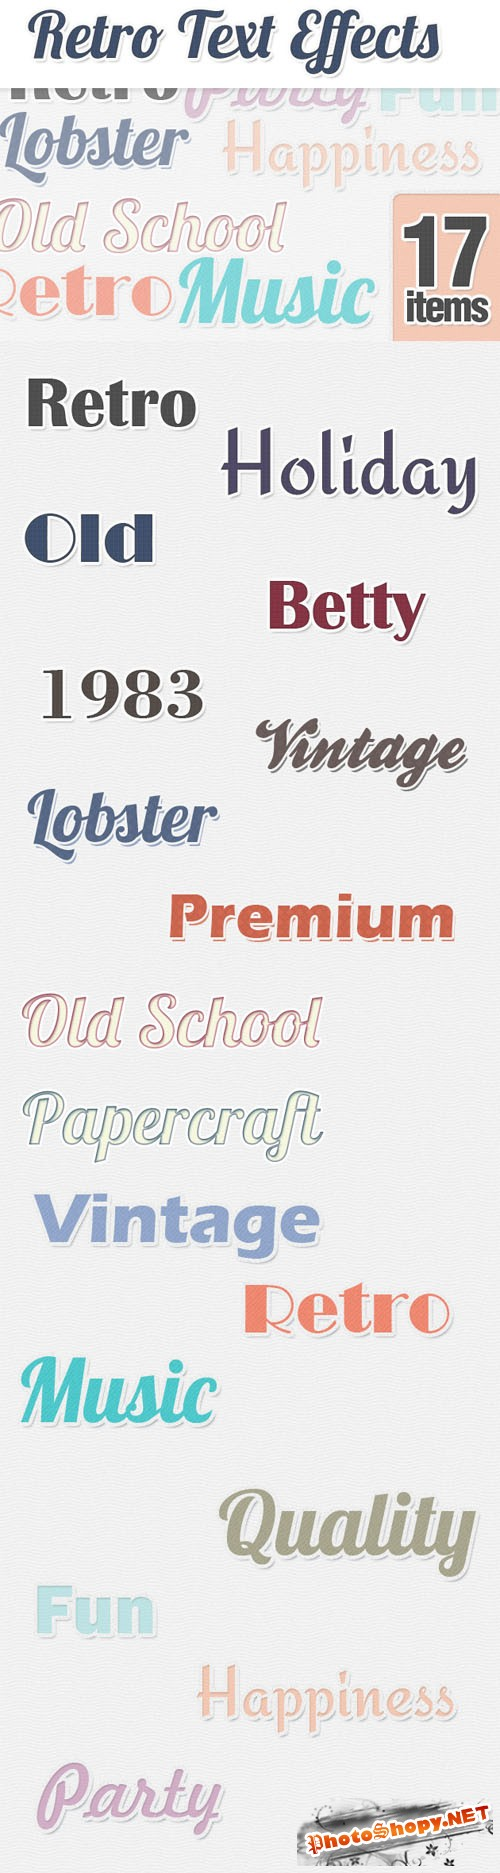 Designtnt - Retro Text Styles for Photoshop